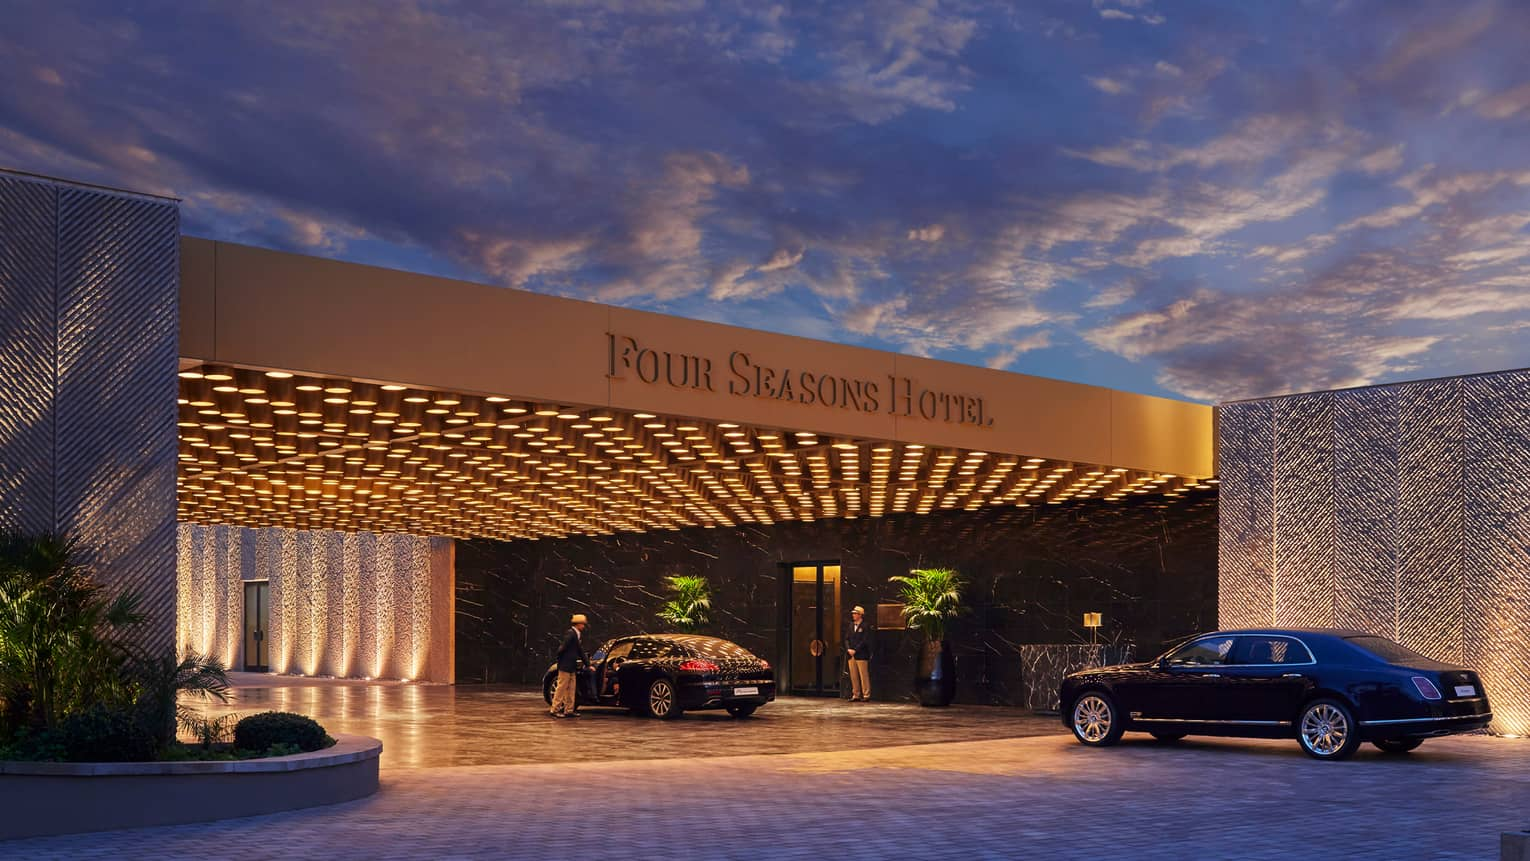 Modern Four Seasons Hotel Casablanca entrance at nights with lights, luxury cars